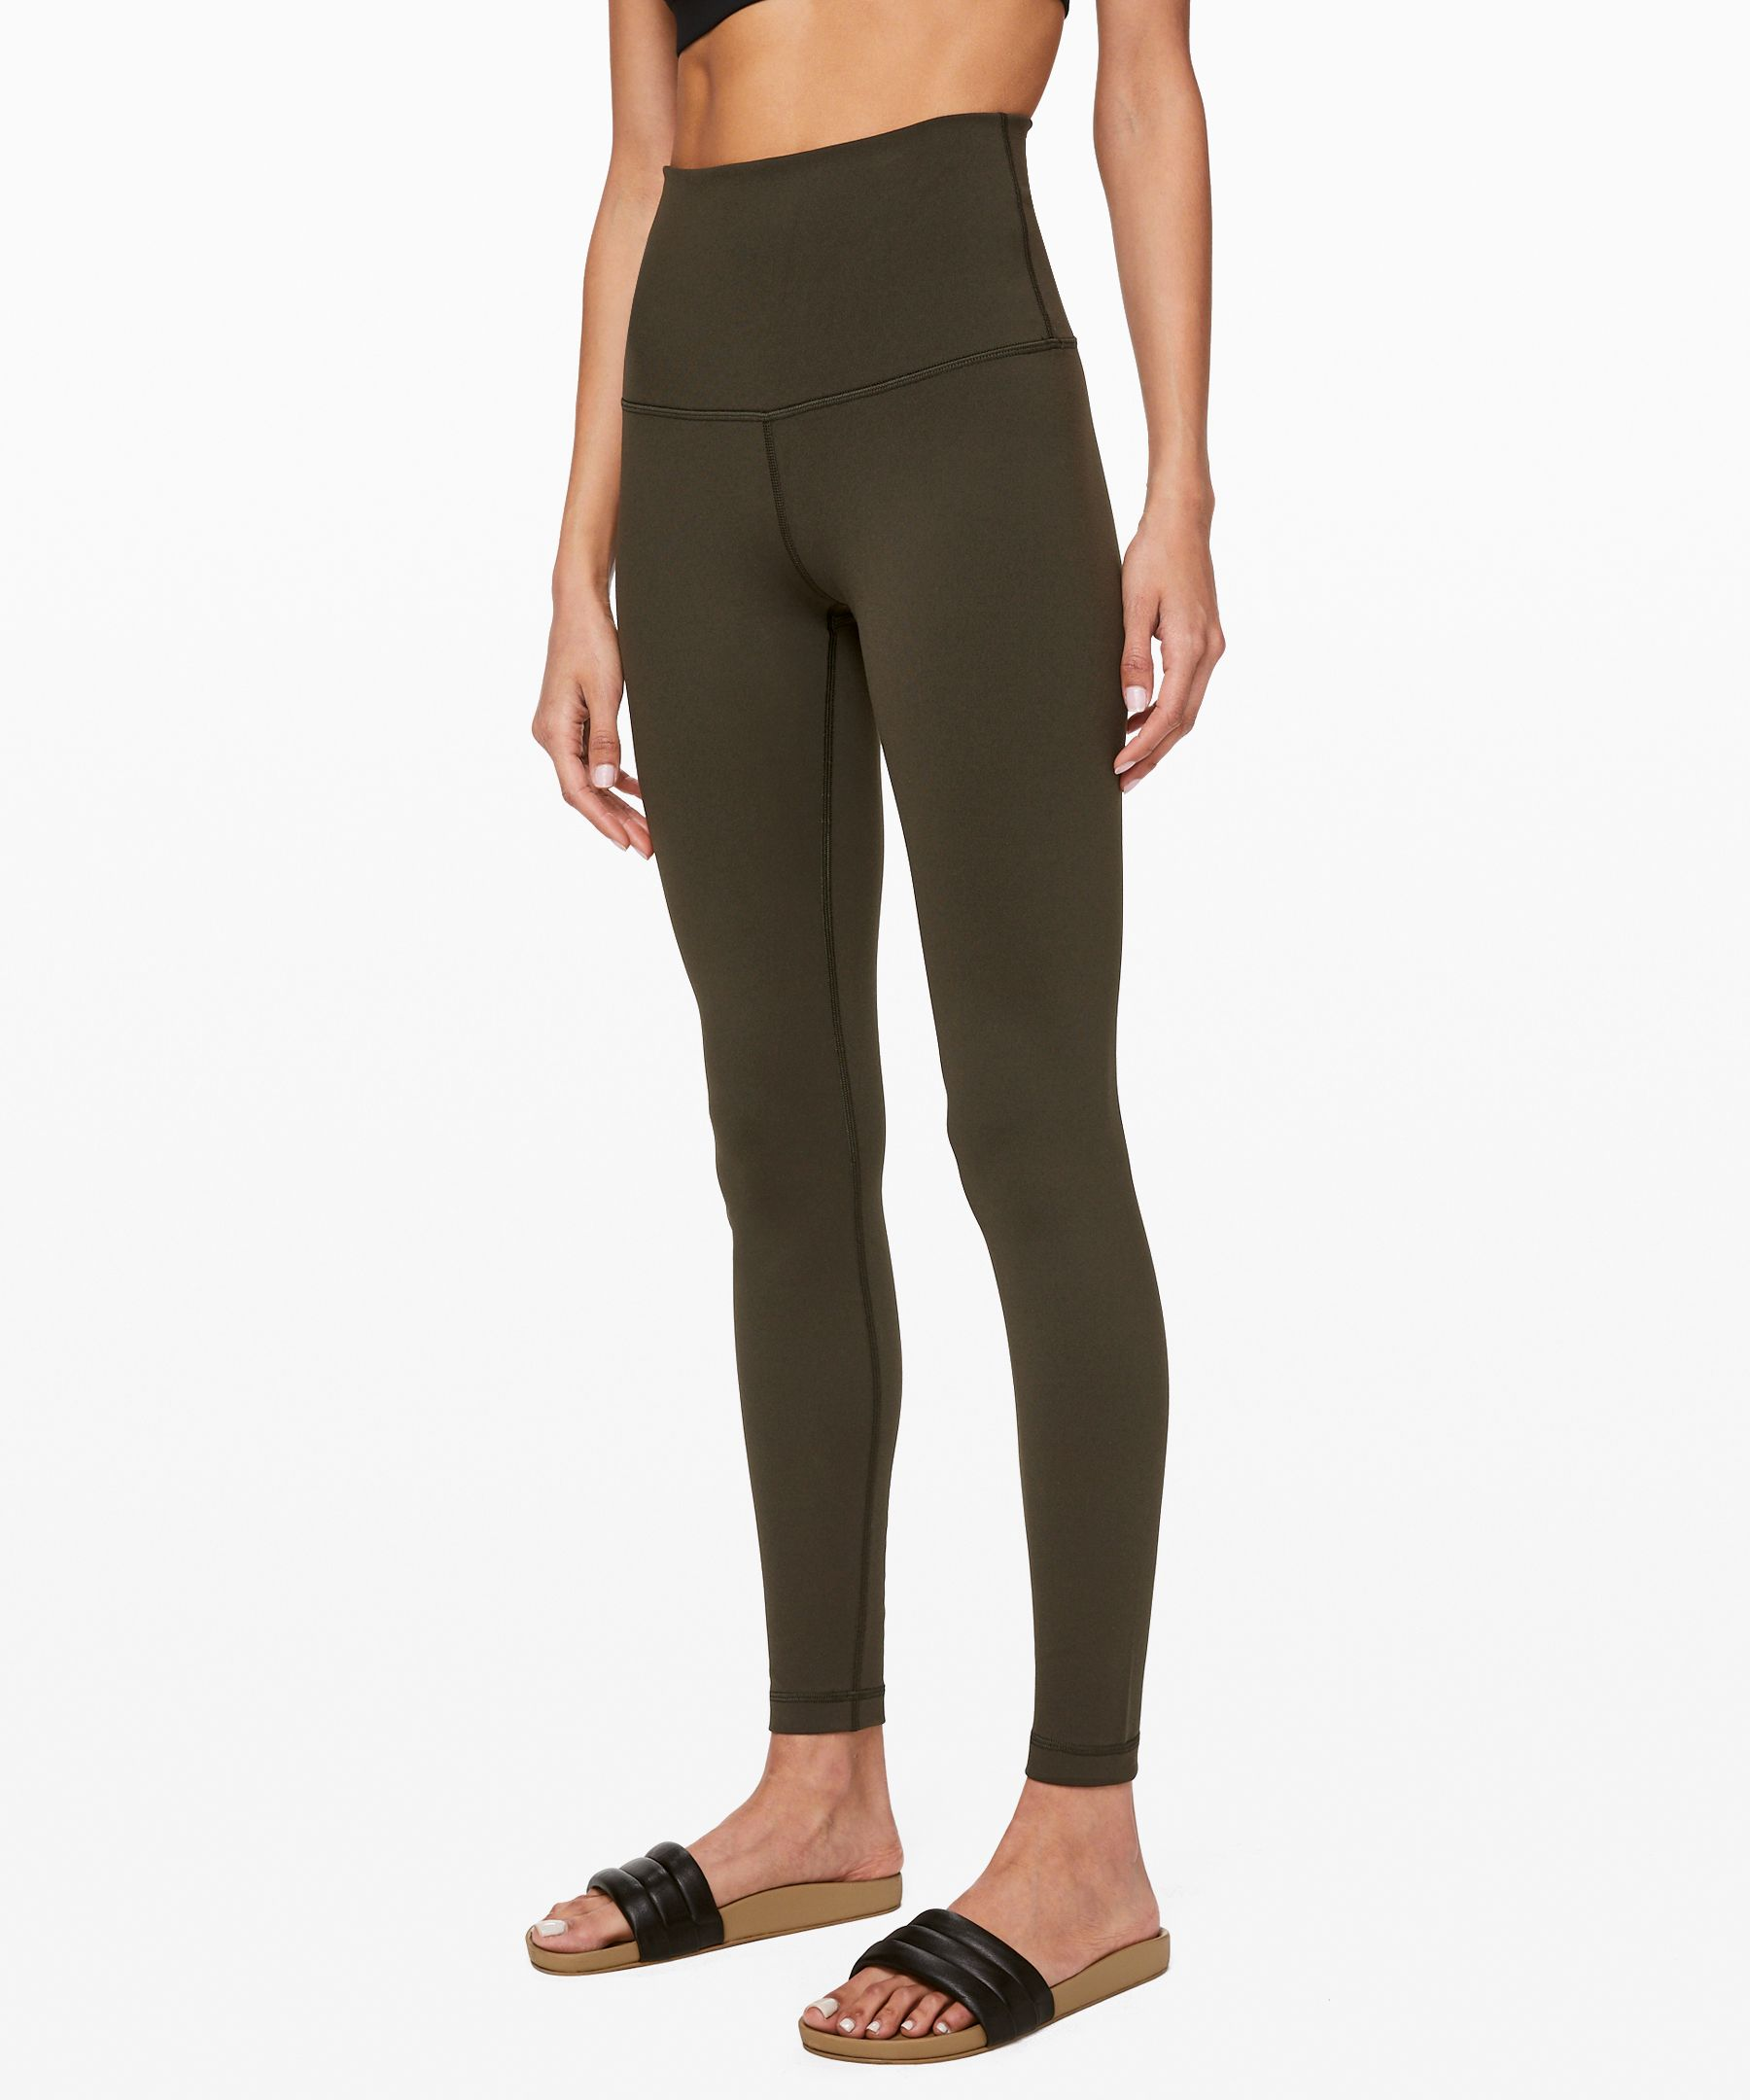 These no-fuss, versatile pants  were designed to fit like a  second skin, perfect for yoga  or the gym.